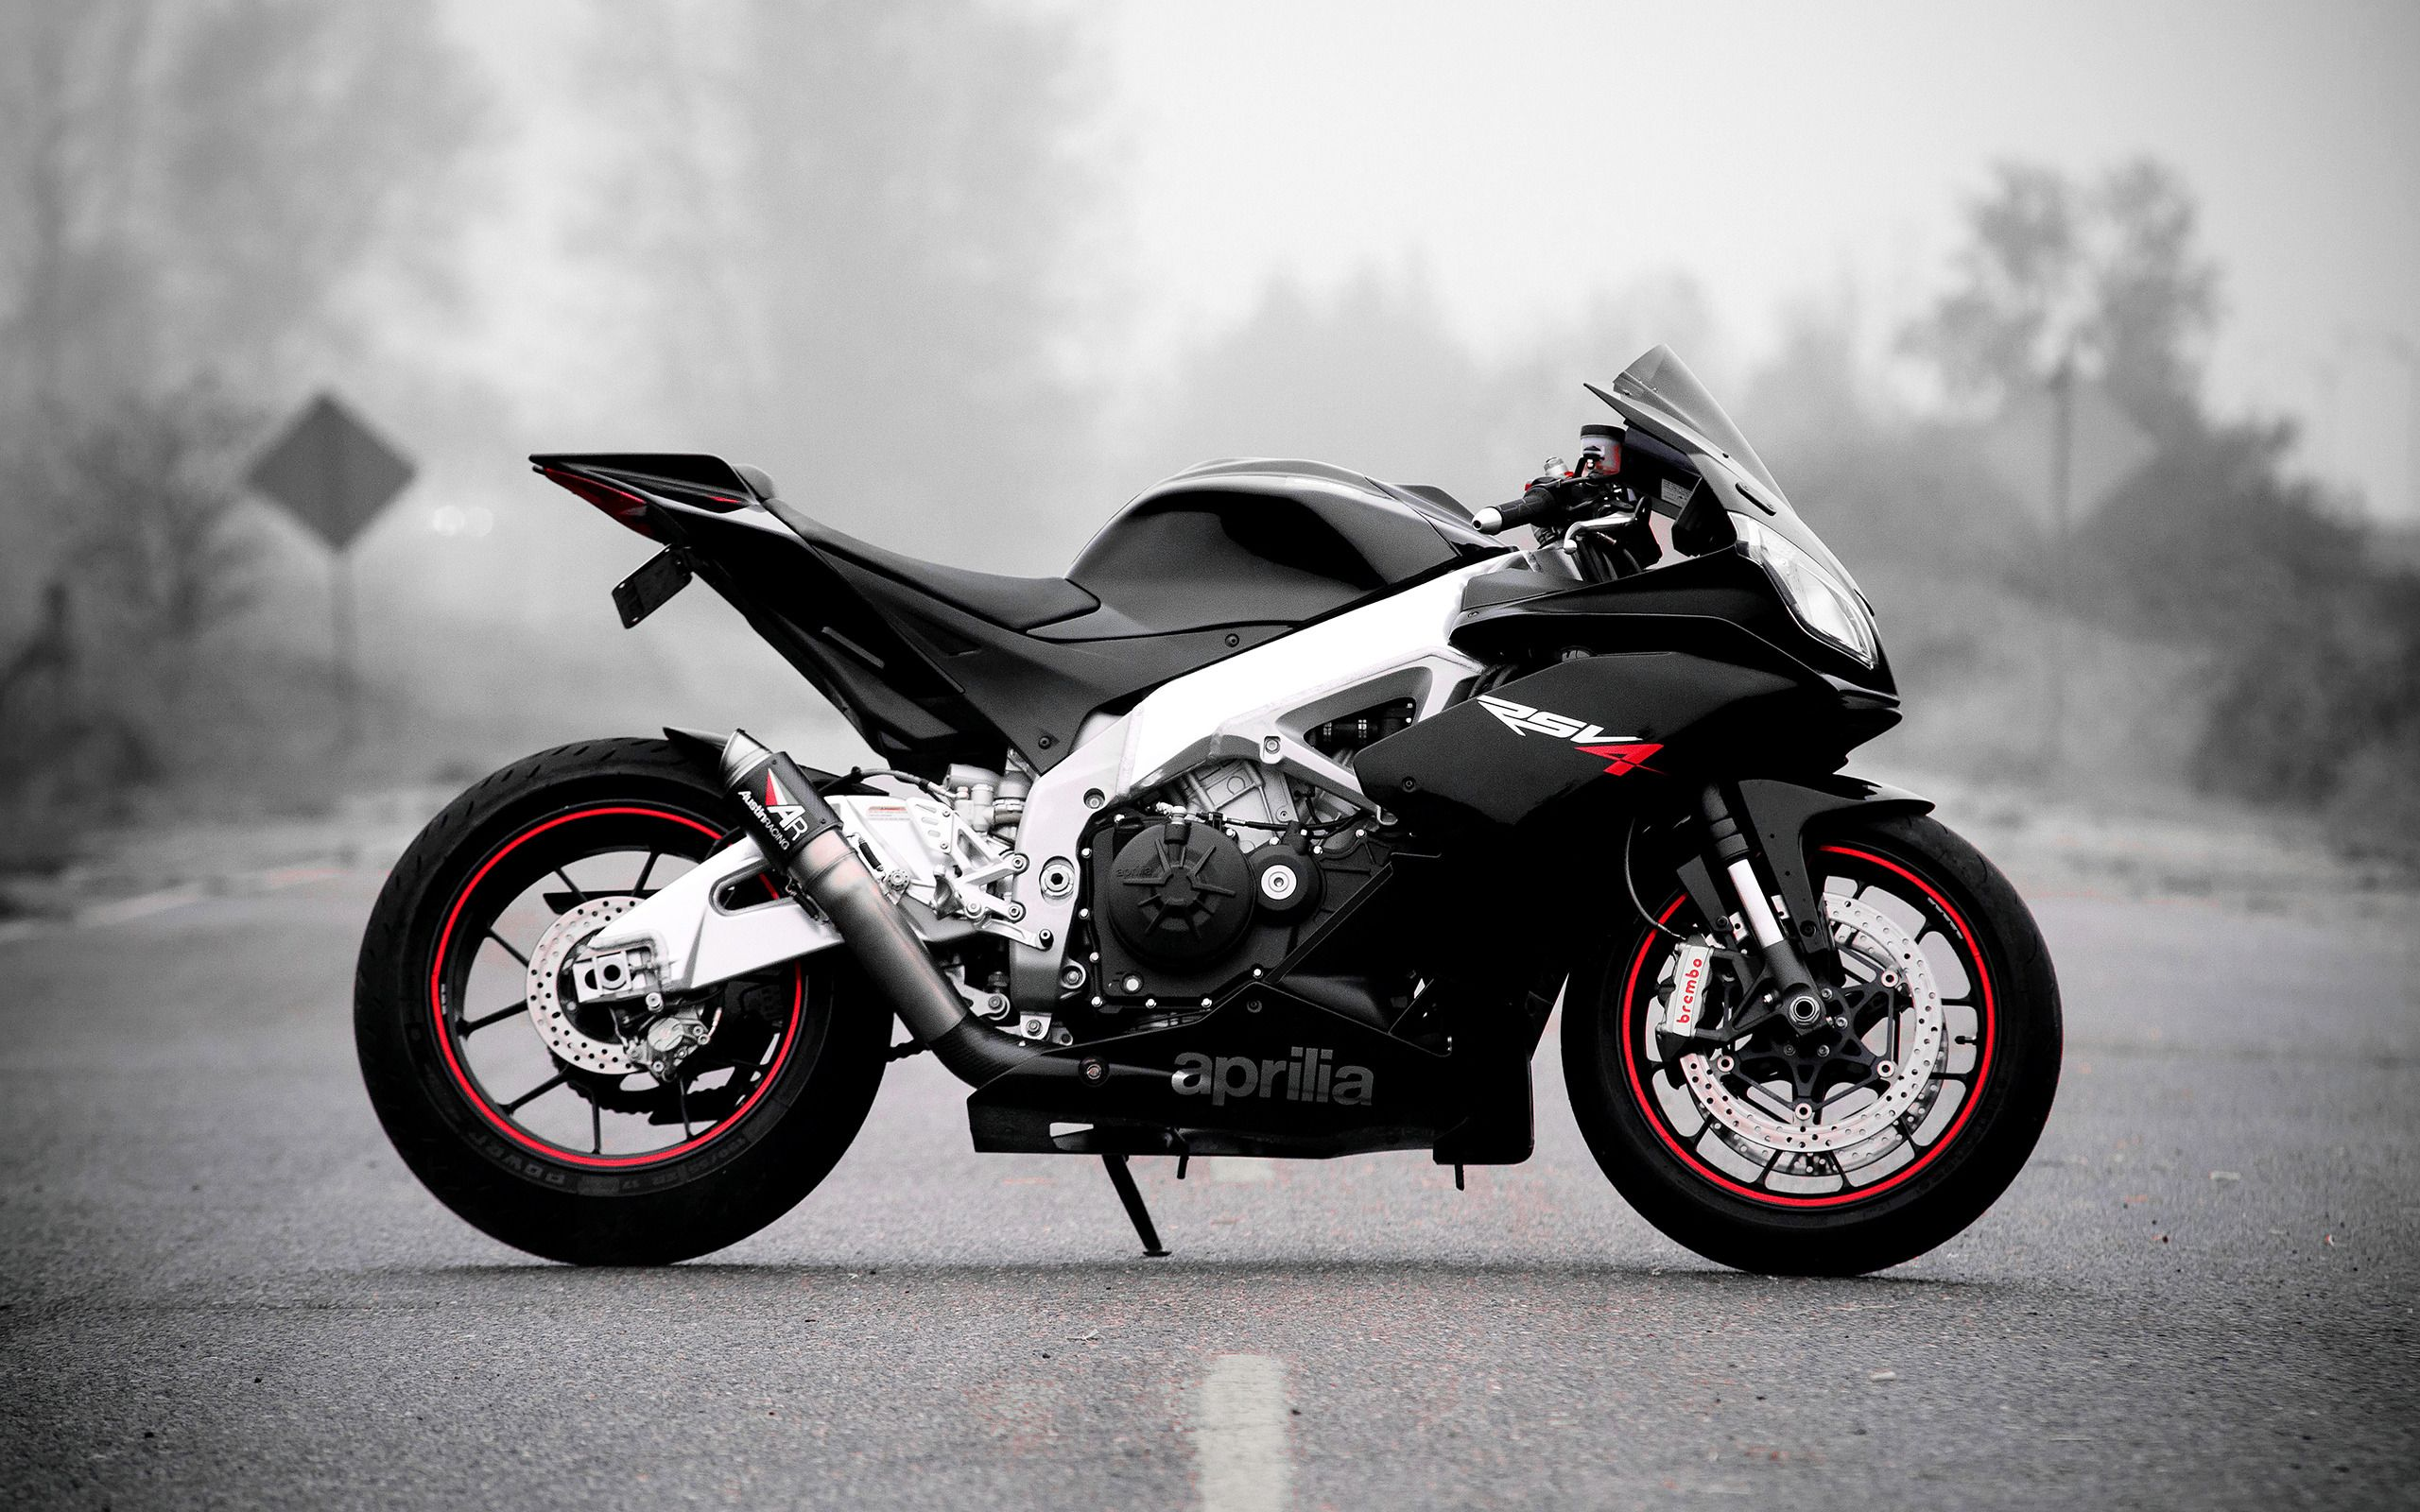 Aprilia Rsv4 Hd Wallpapers Http Wallbervation Com Aprilia Rsv4